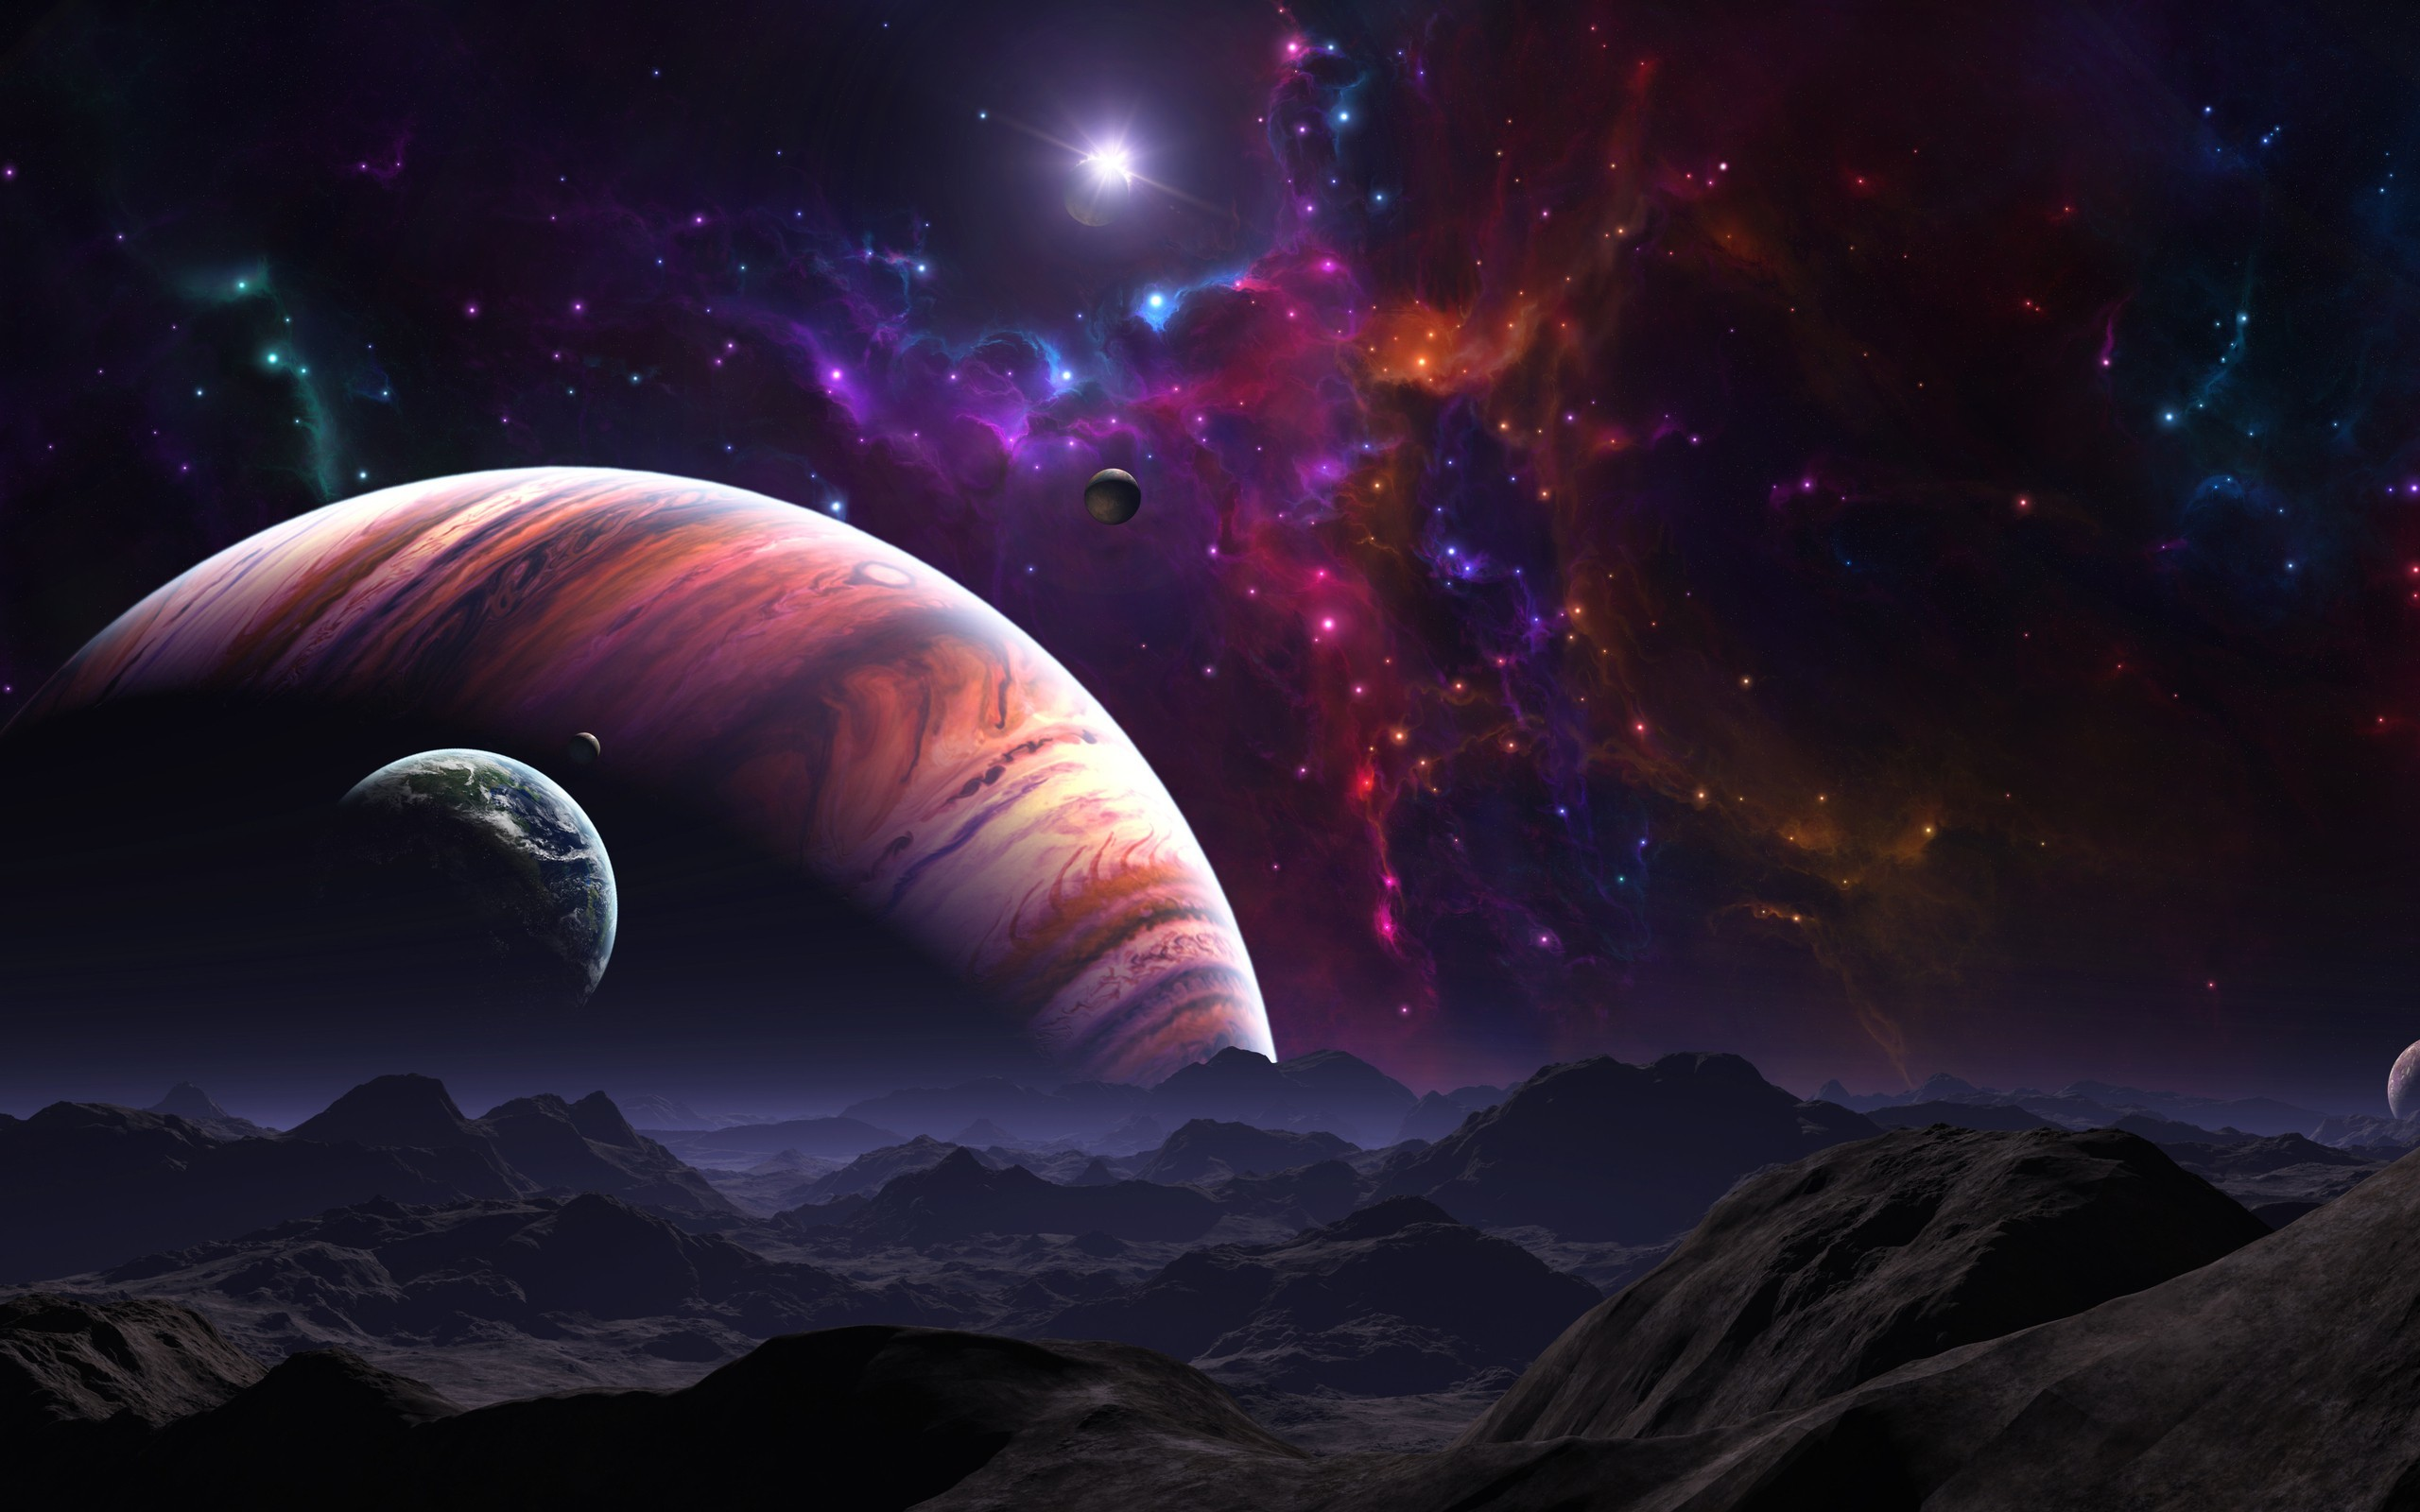 amazing jupiter space desktop background hd wallpaper widescreen images  free download Hd Space wallpapers download